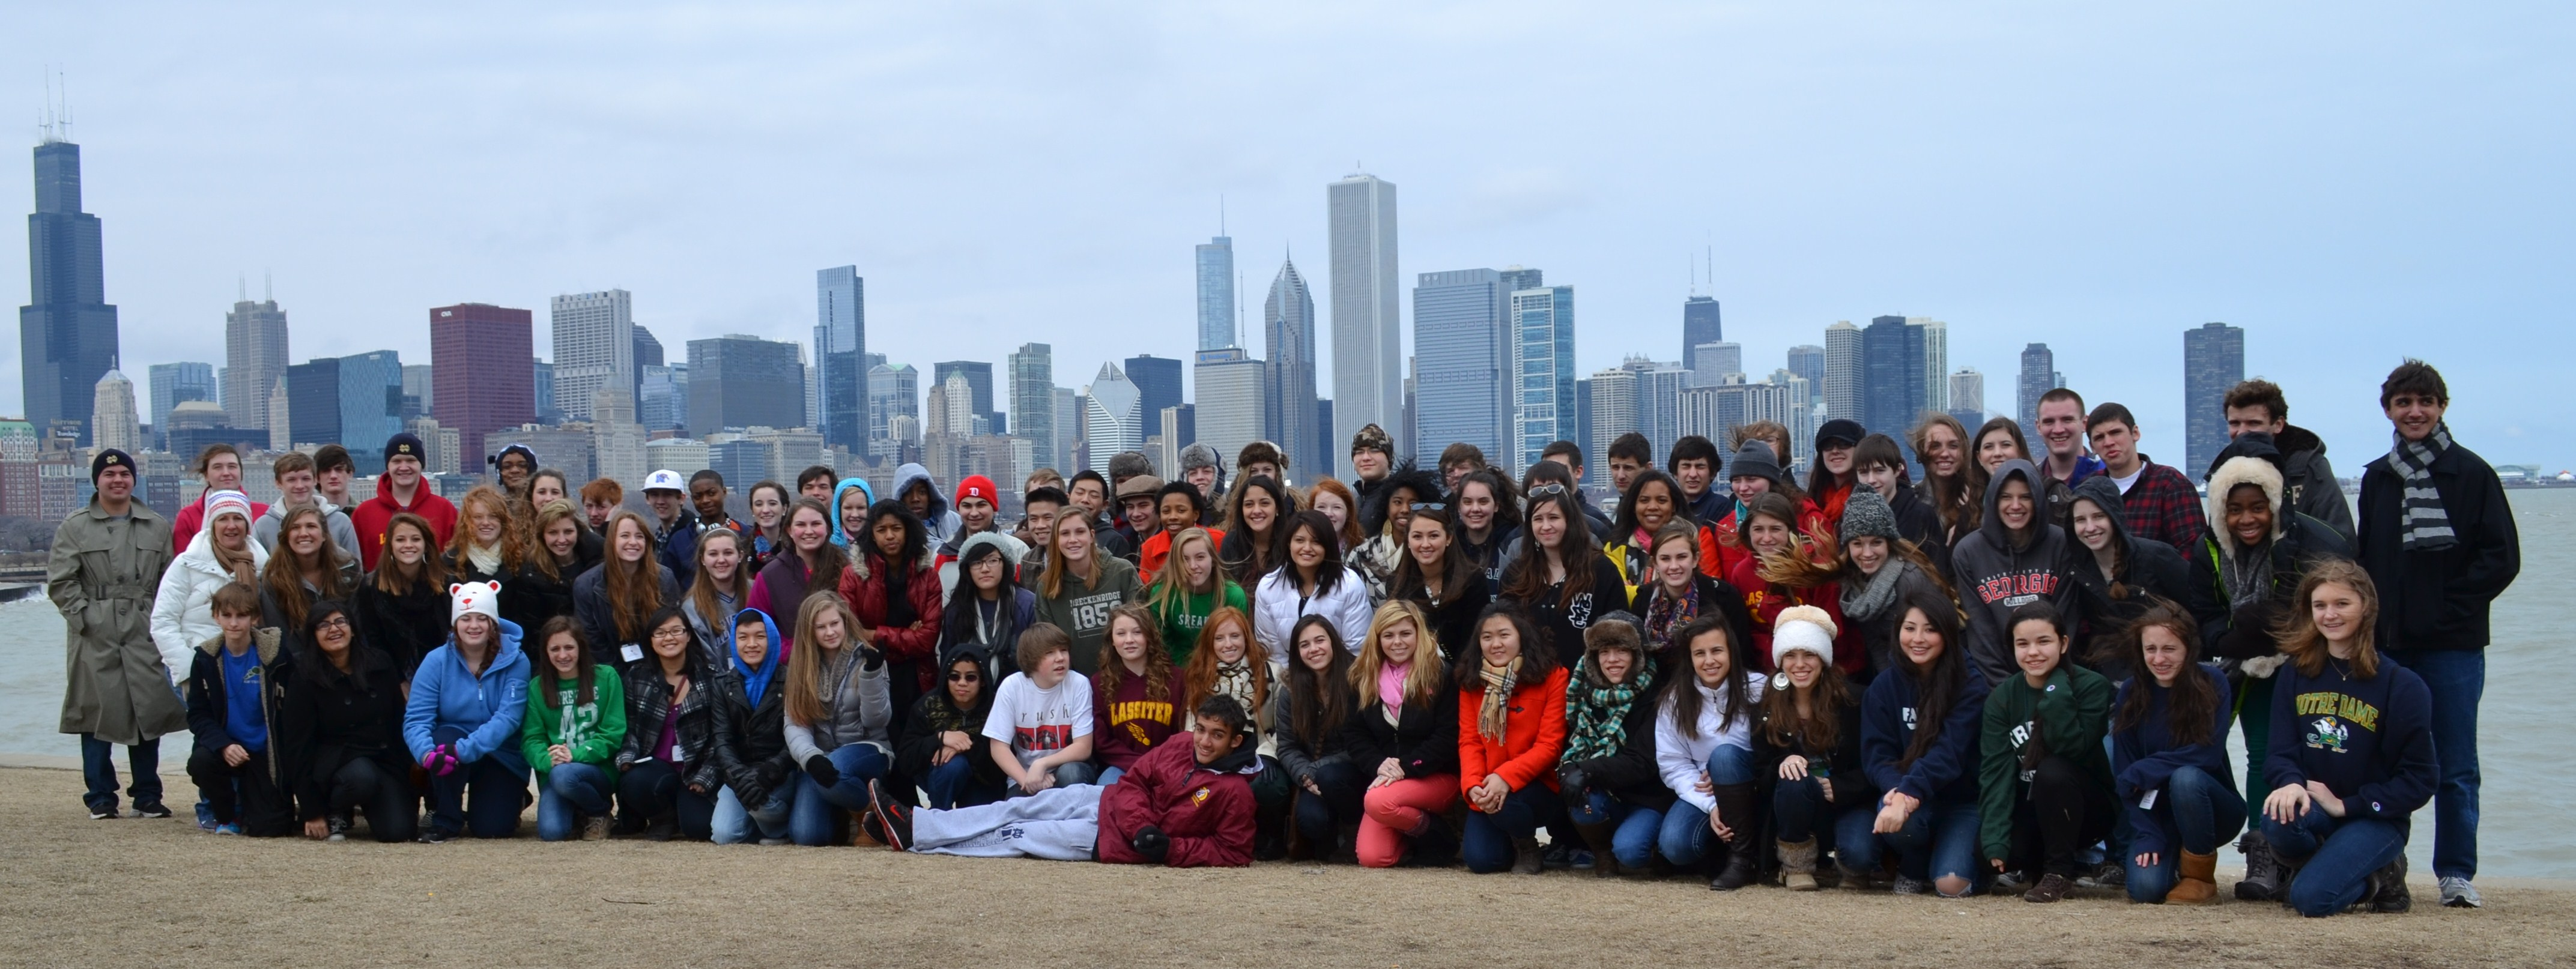 LHS Orchestra in Chicago March 2013